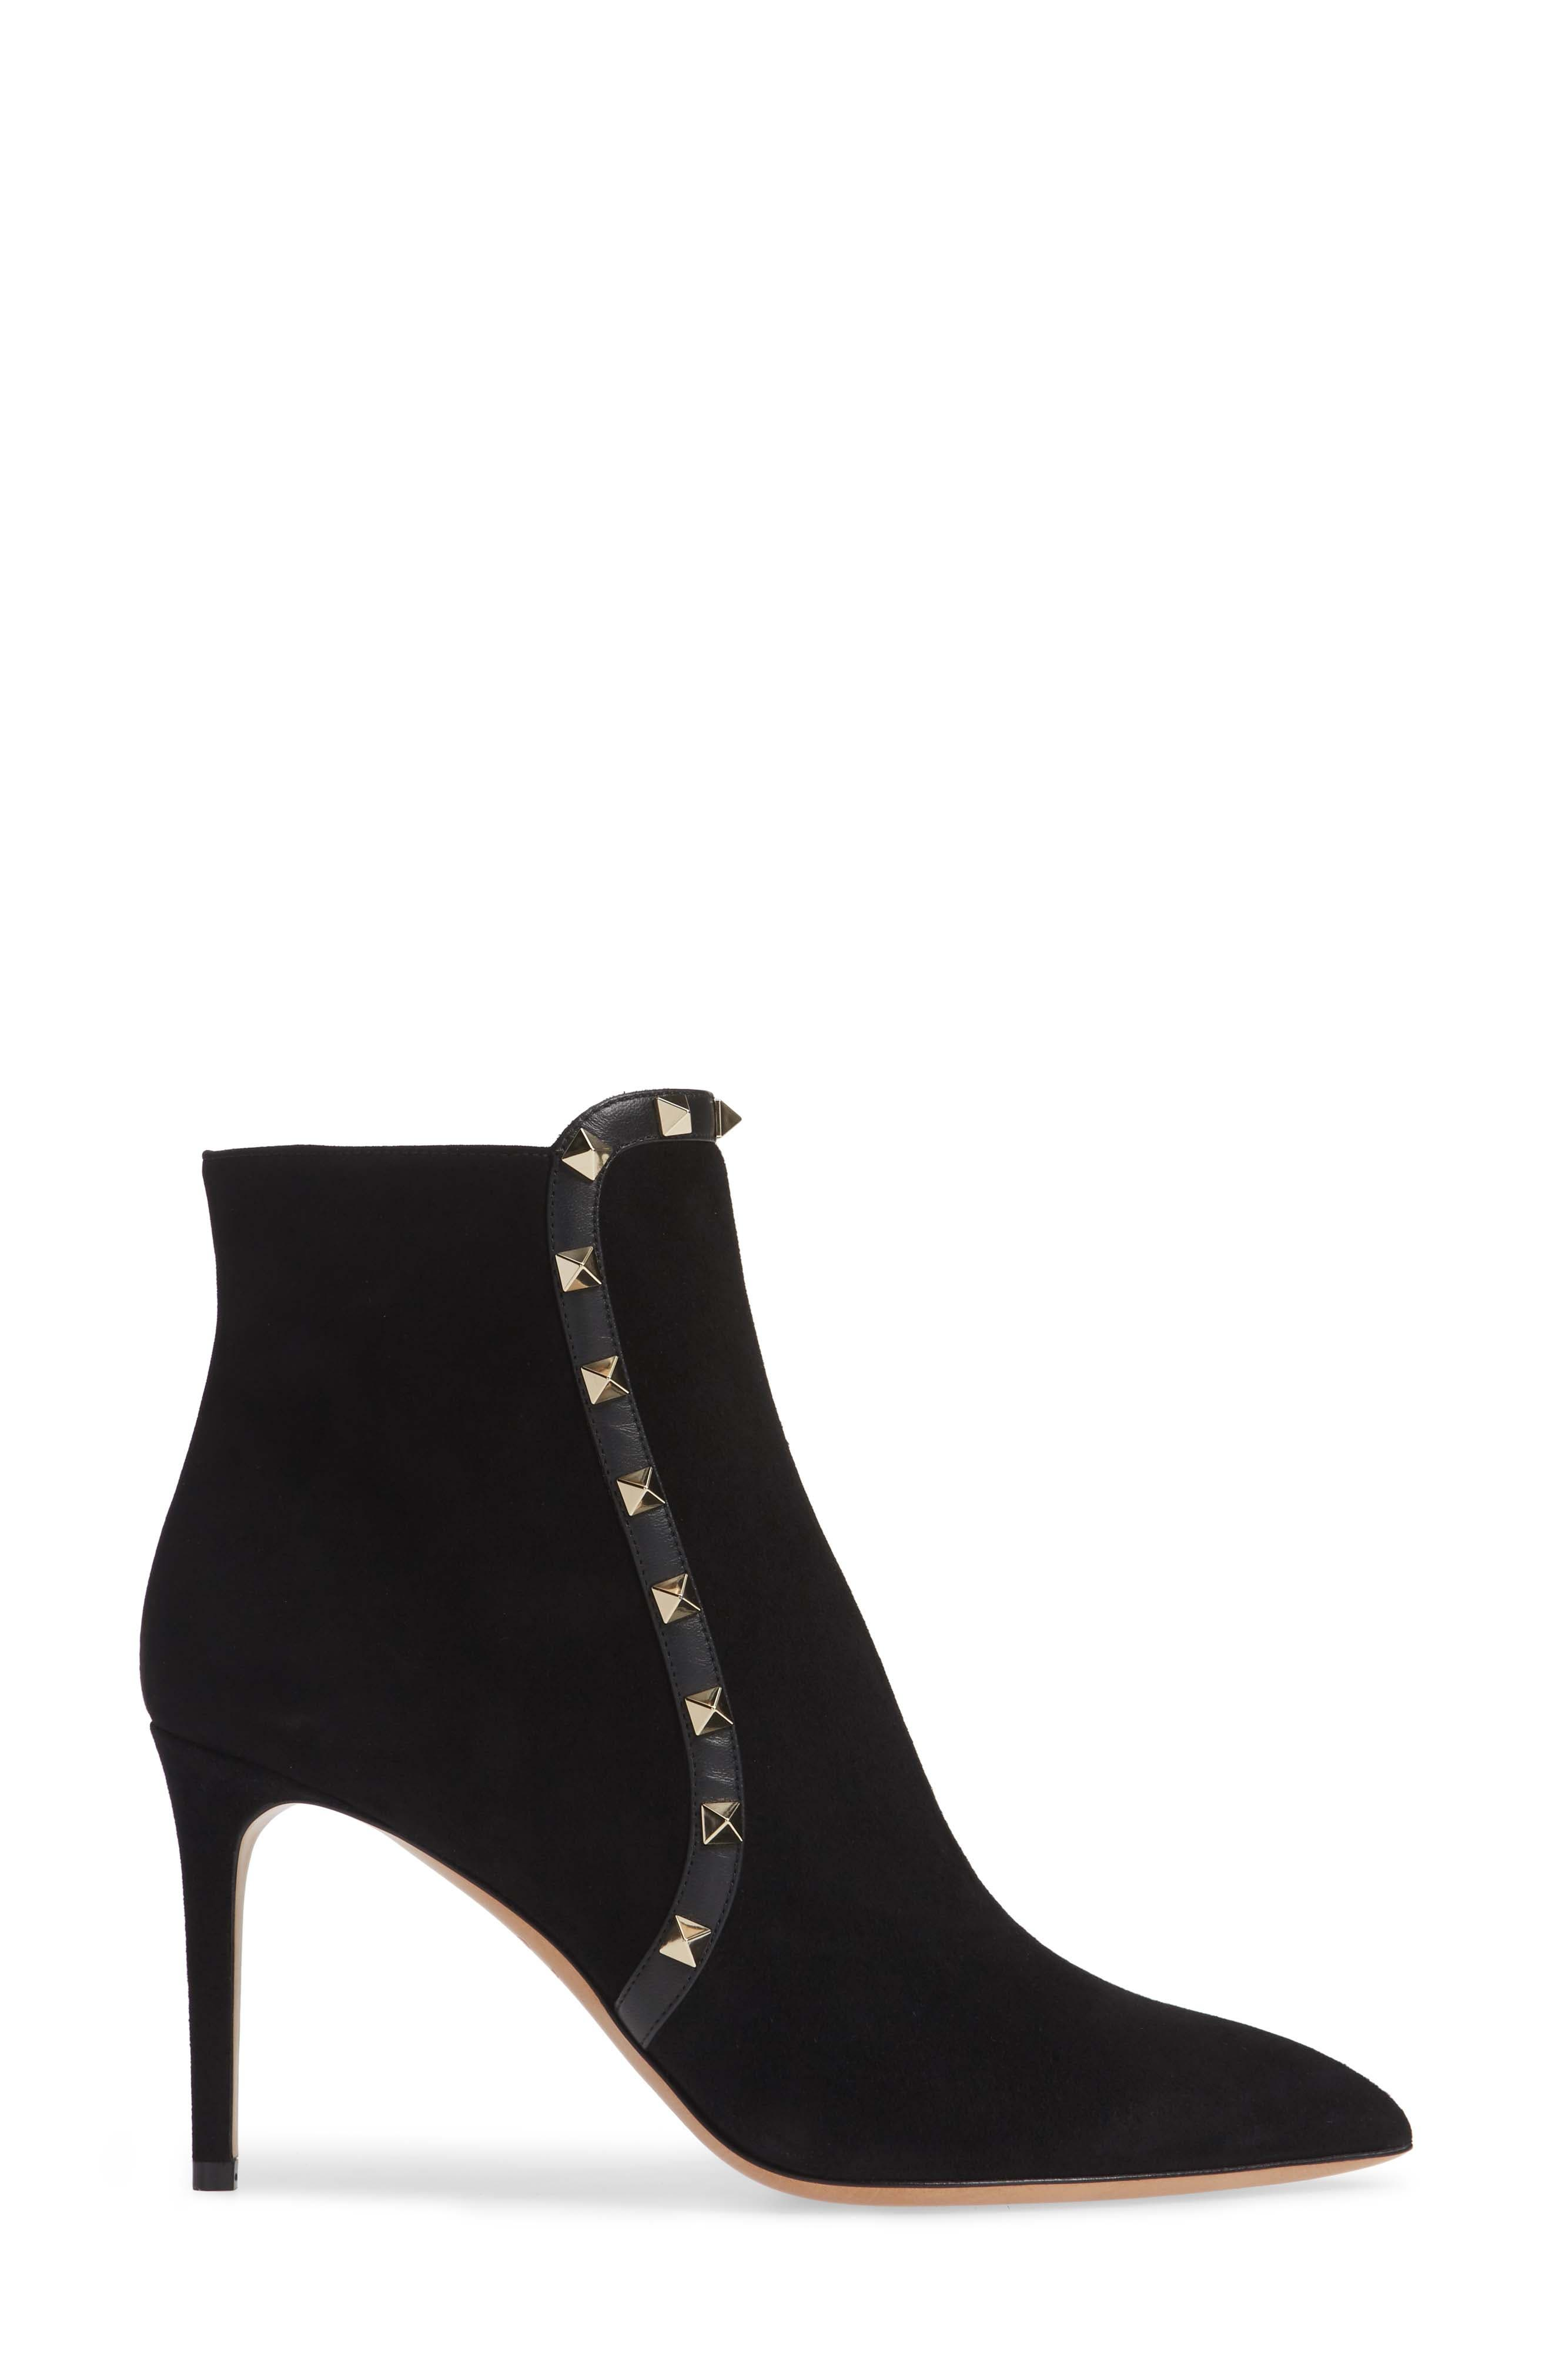 VALENTINO GARAVANI,                             Rockstud Bootie,                             Alternate thumbnail 3, color,                             BLACK